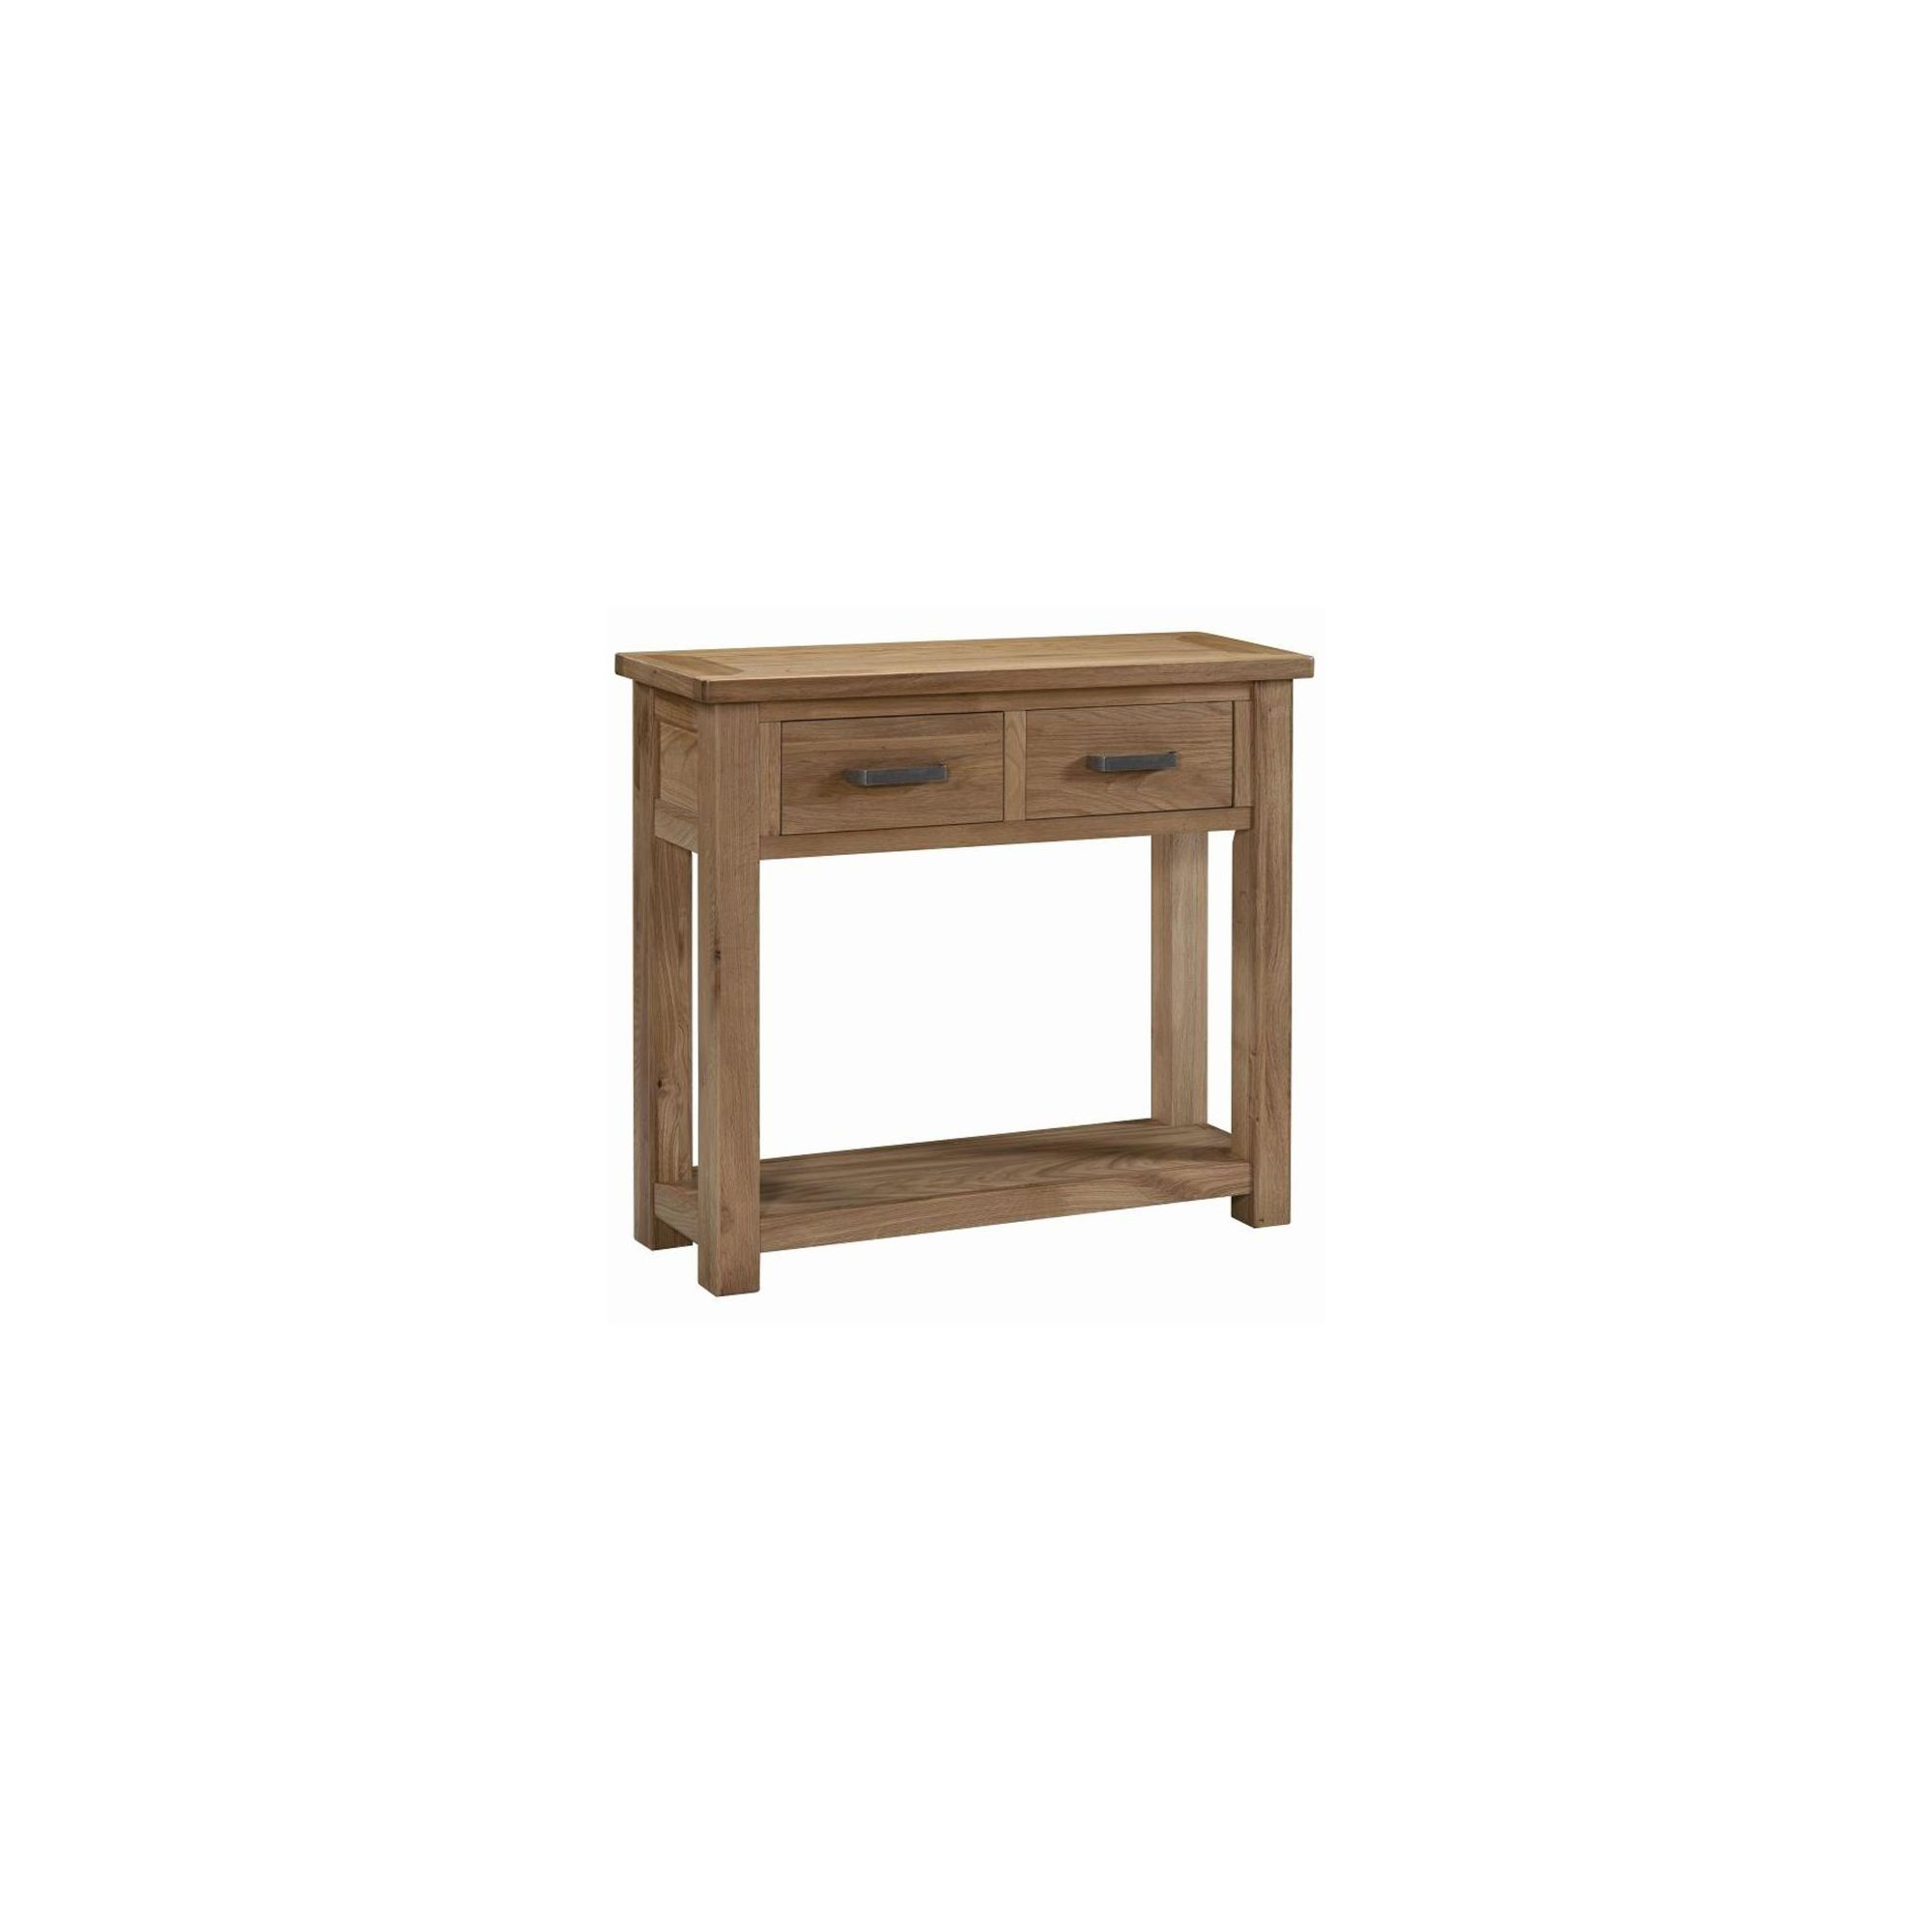 Kelburn Furniture Lyon Console Table in Light Oak Matt Lacquer